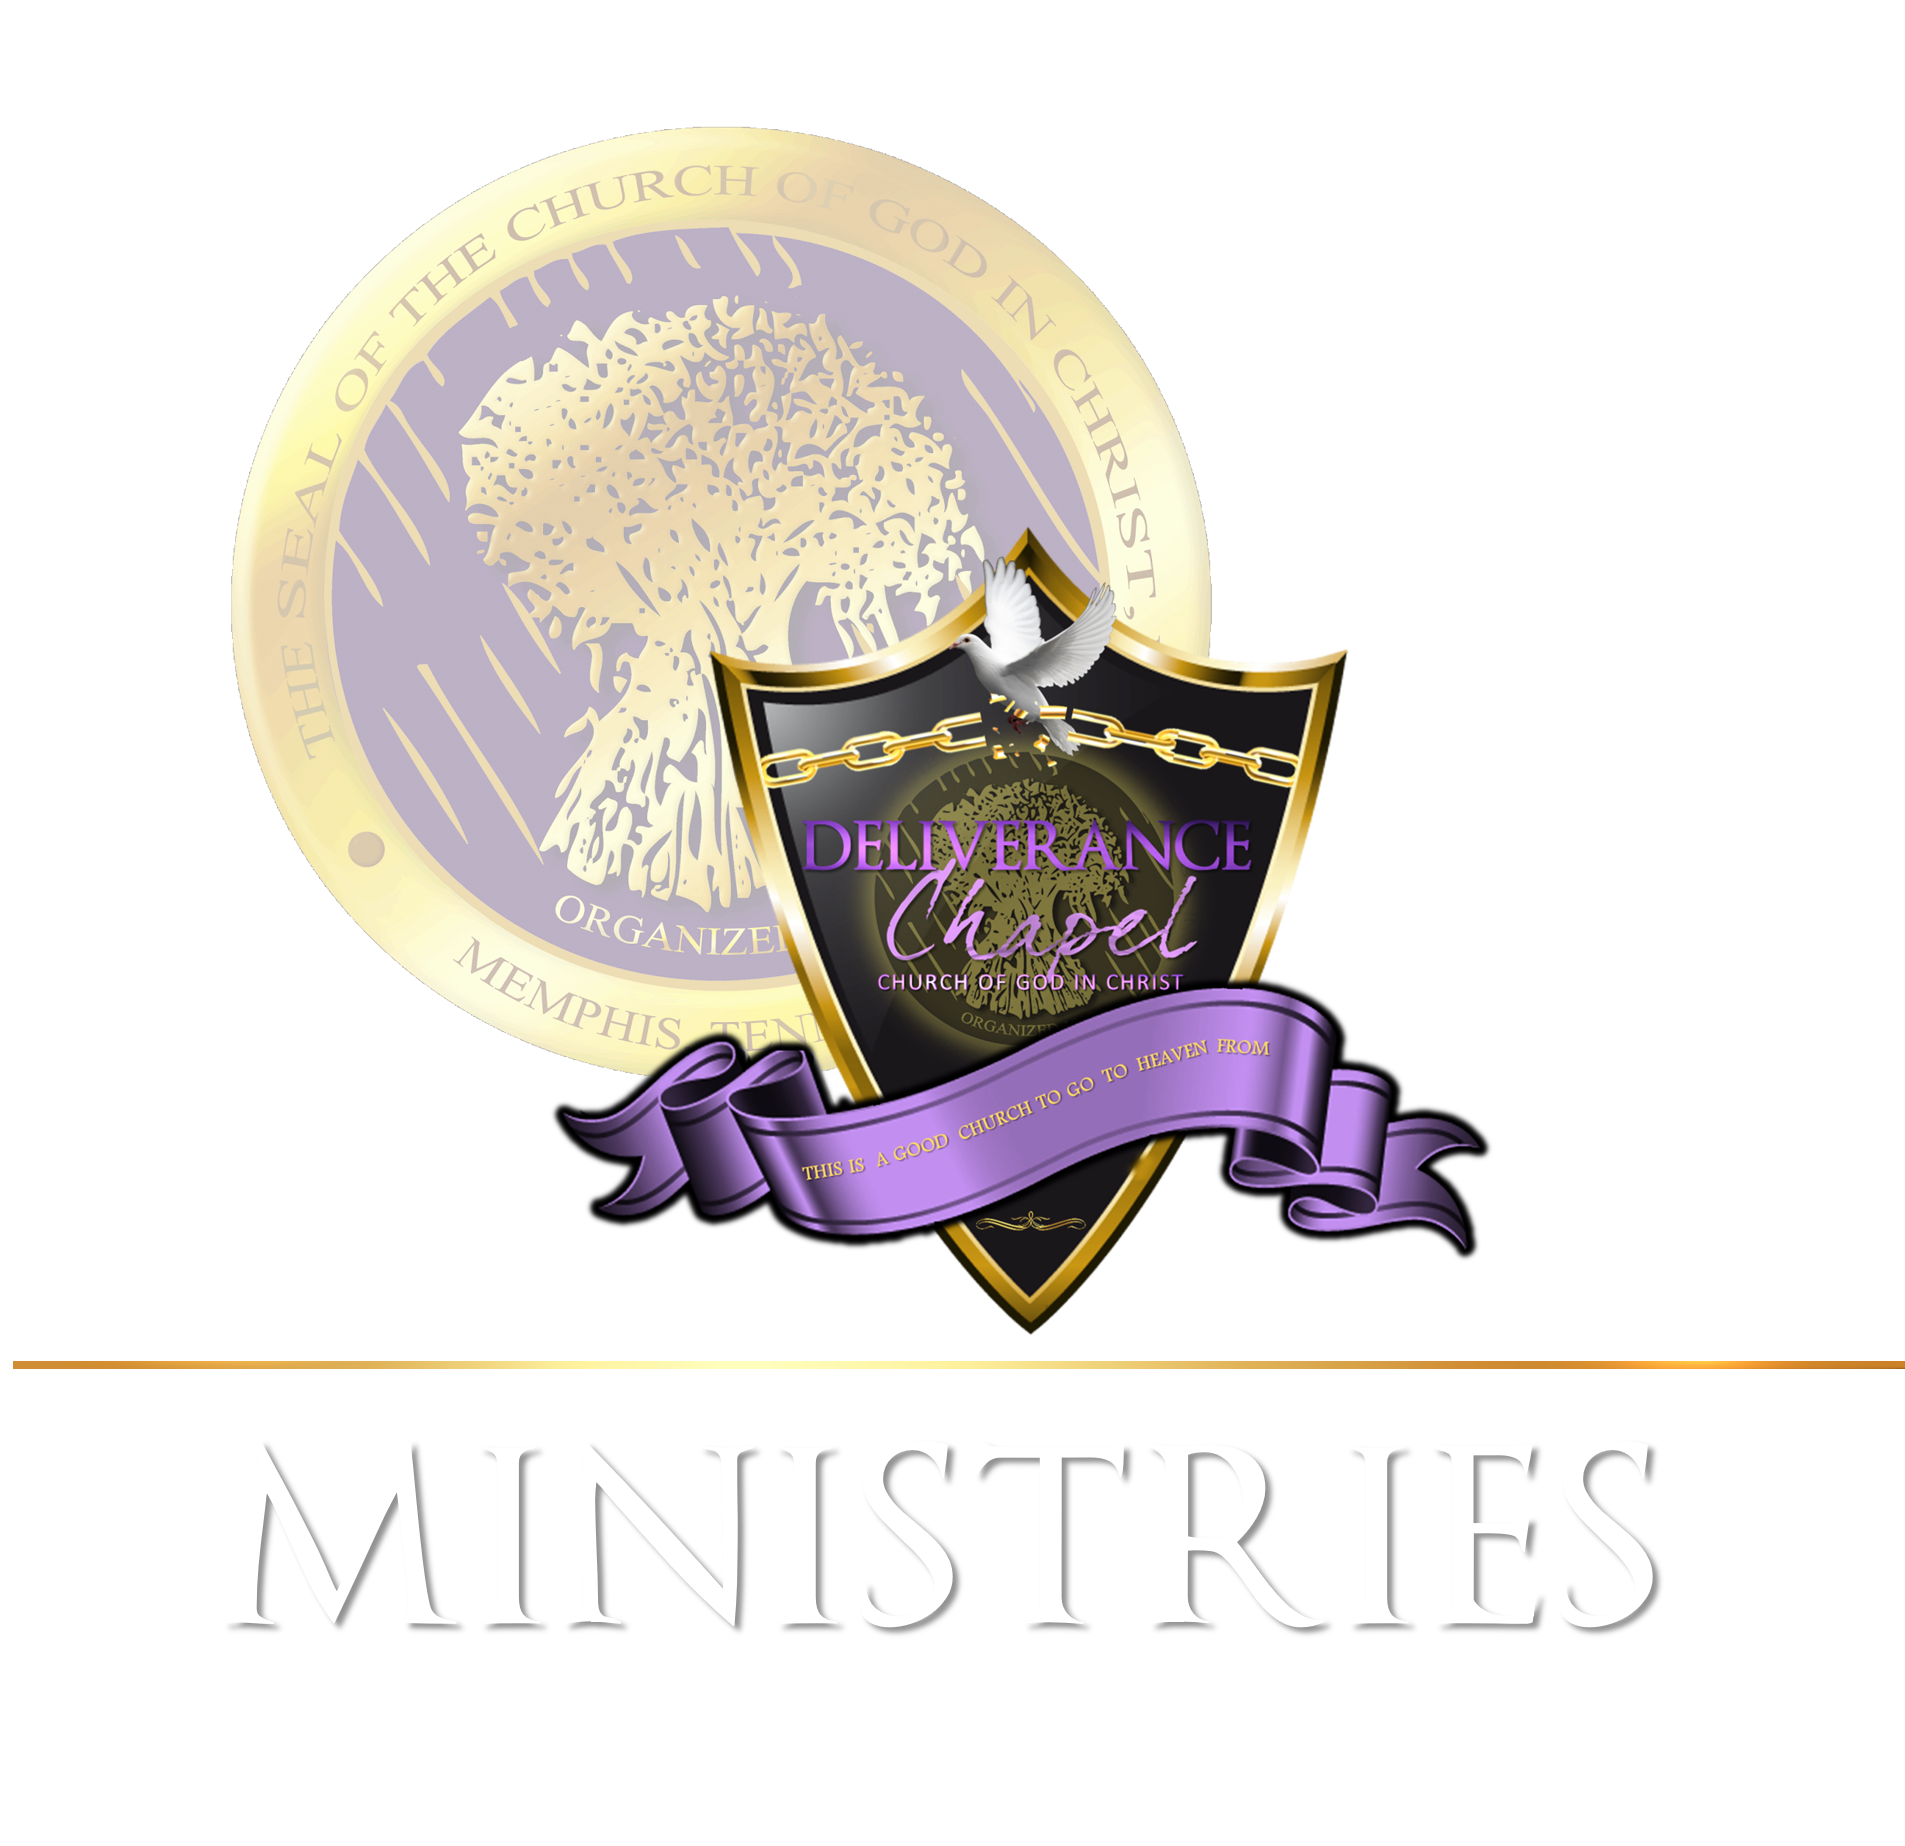 MINISTRIES TITLE